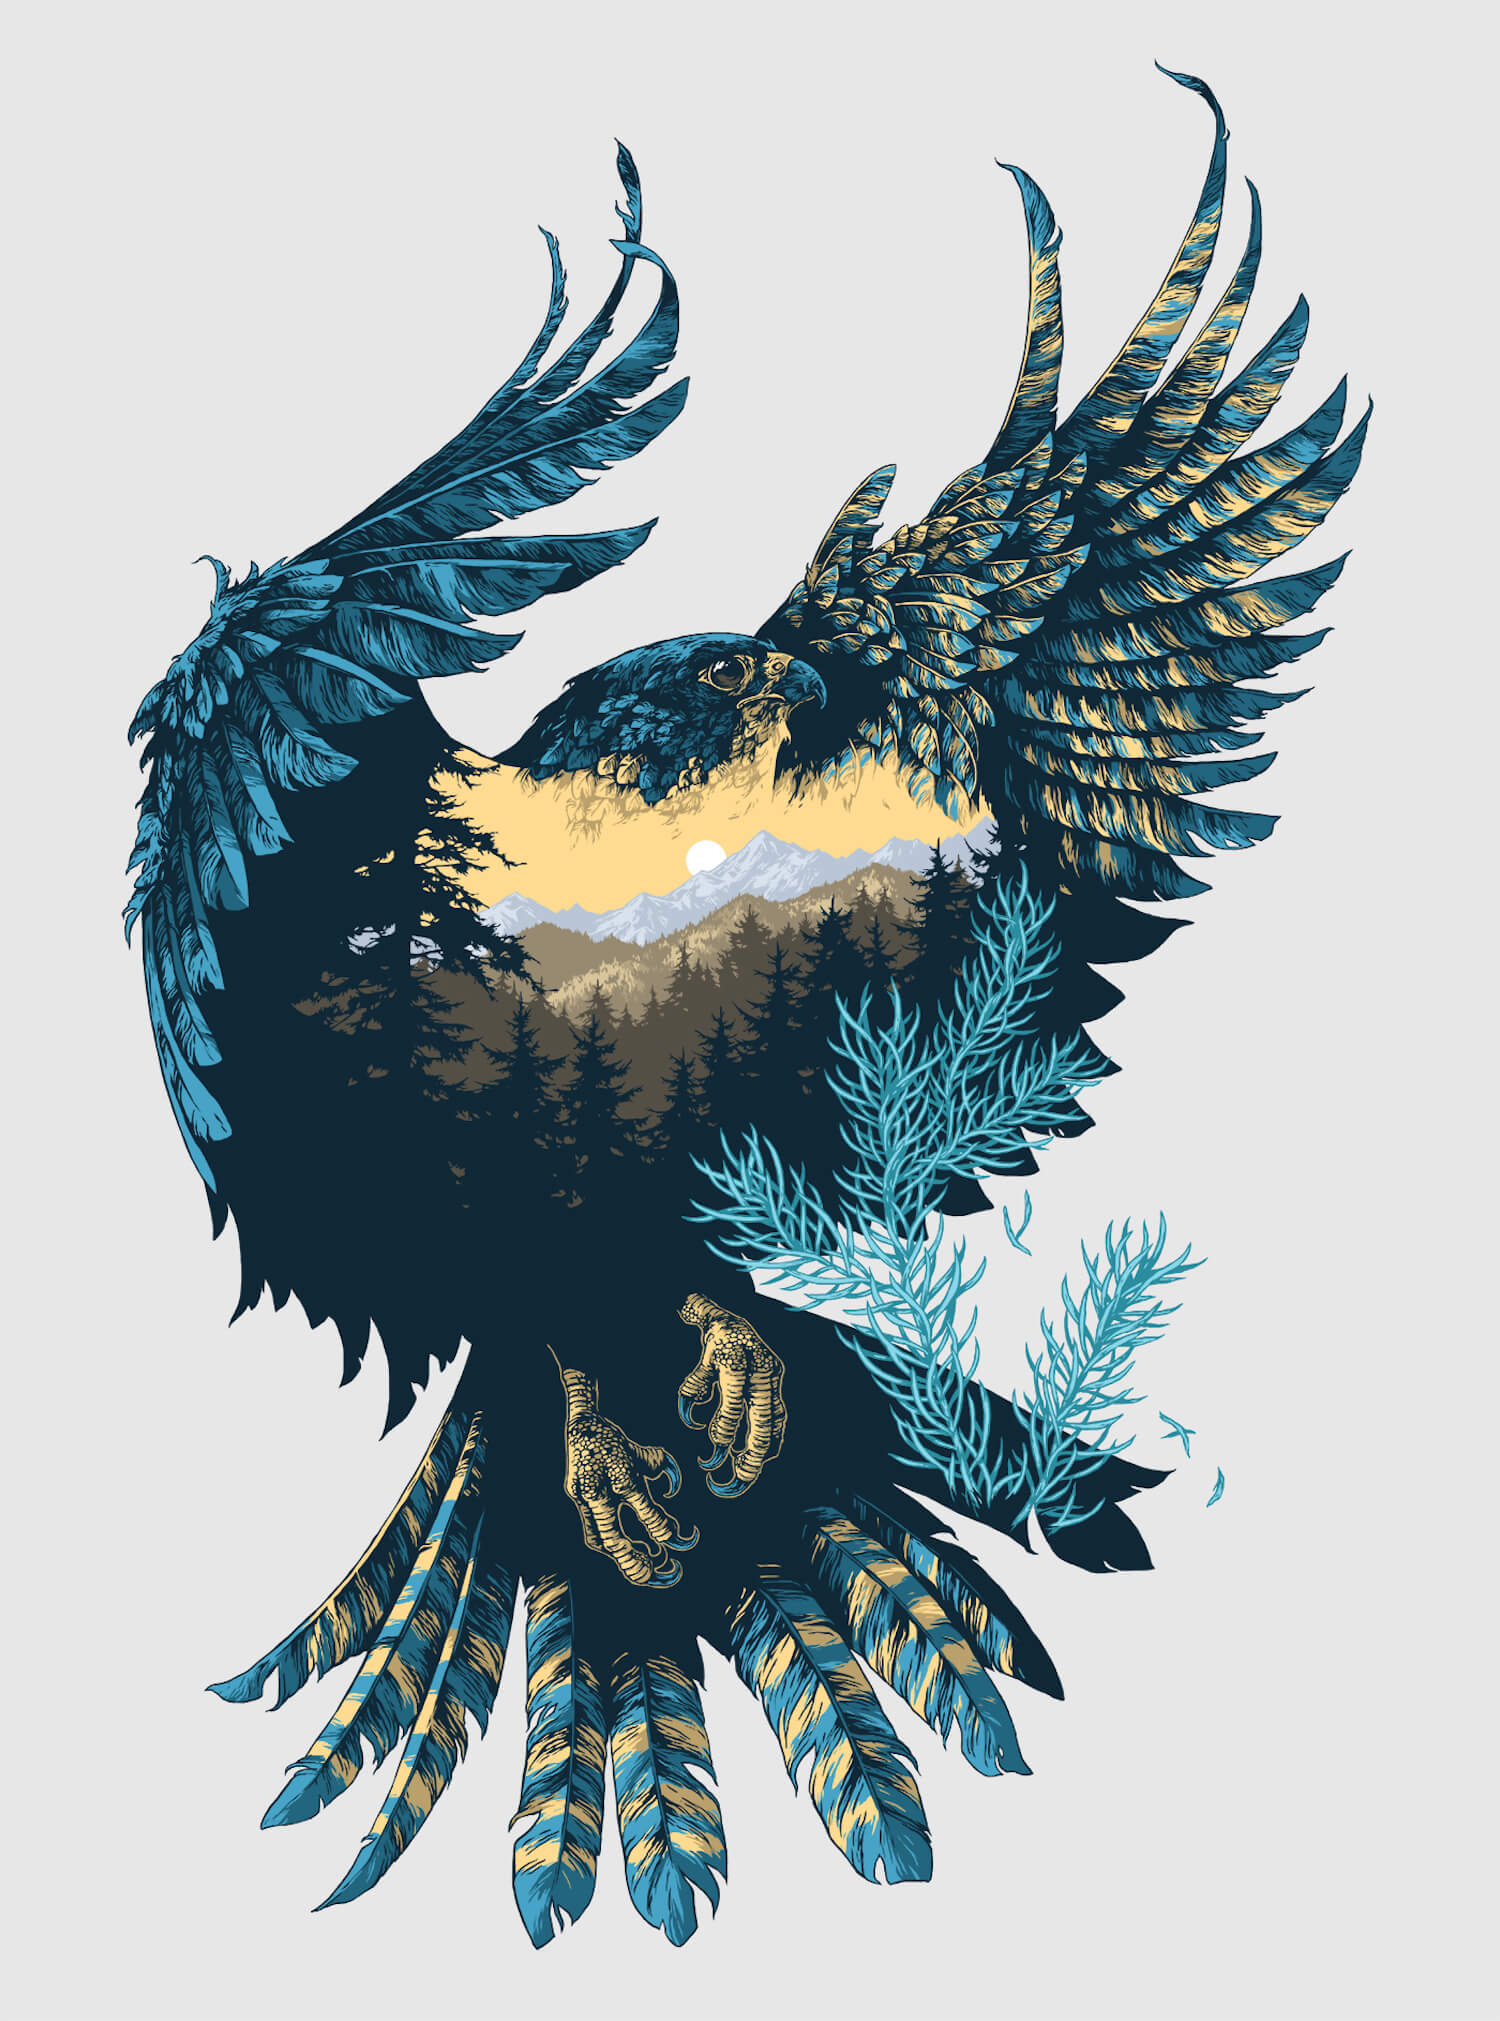 double exposure bird illustration